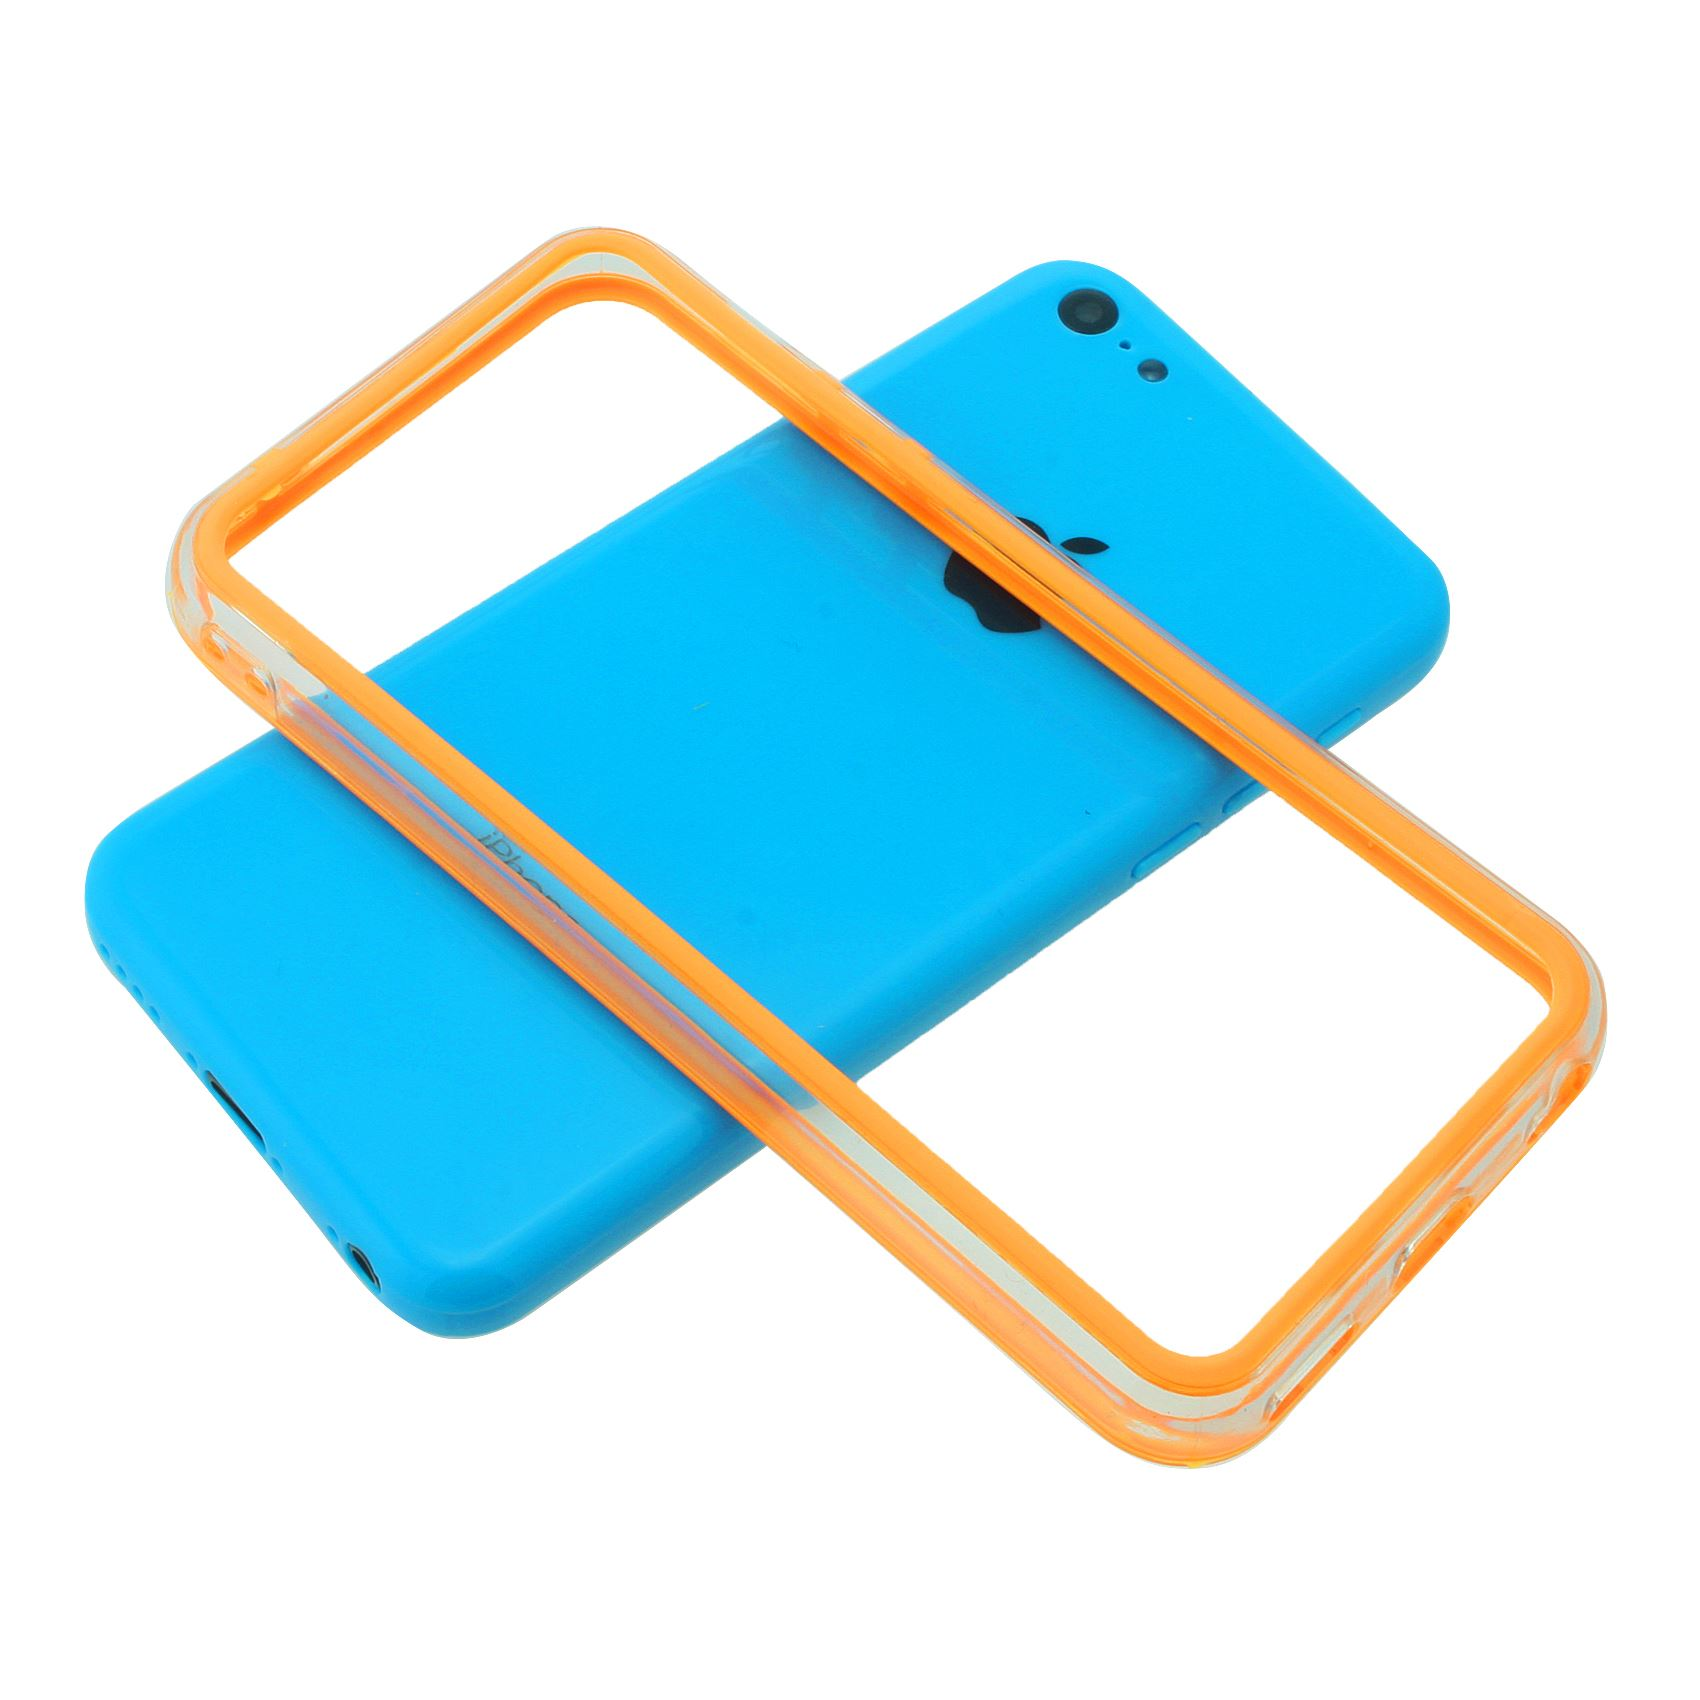 TRANSPARENT-CLEAR-FRAME-BUTTONS-BUMPER-CASE-PLASTIC-COVER-FOR-APPLE-IPHONE-5C thumbnail 7